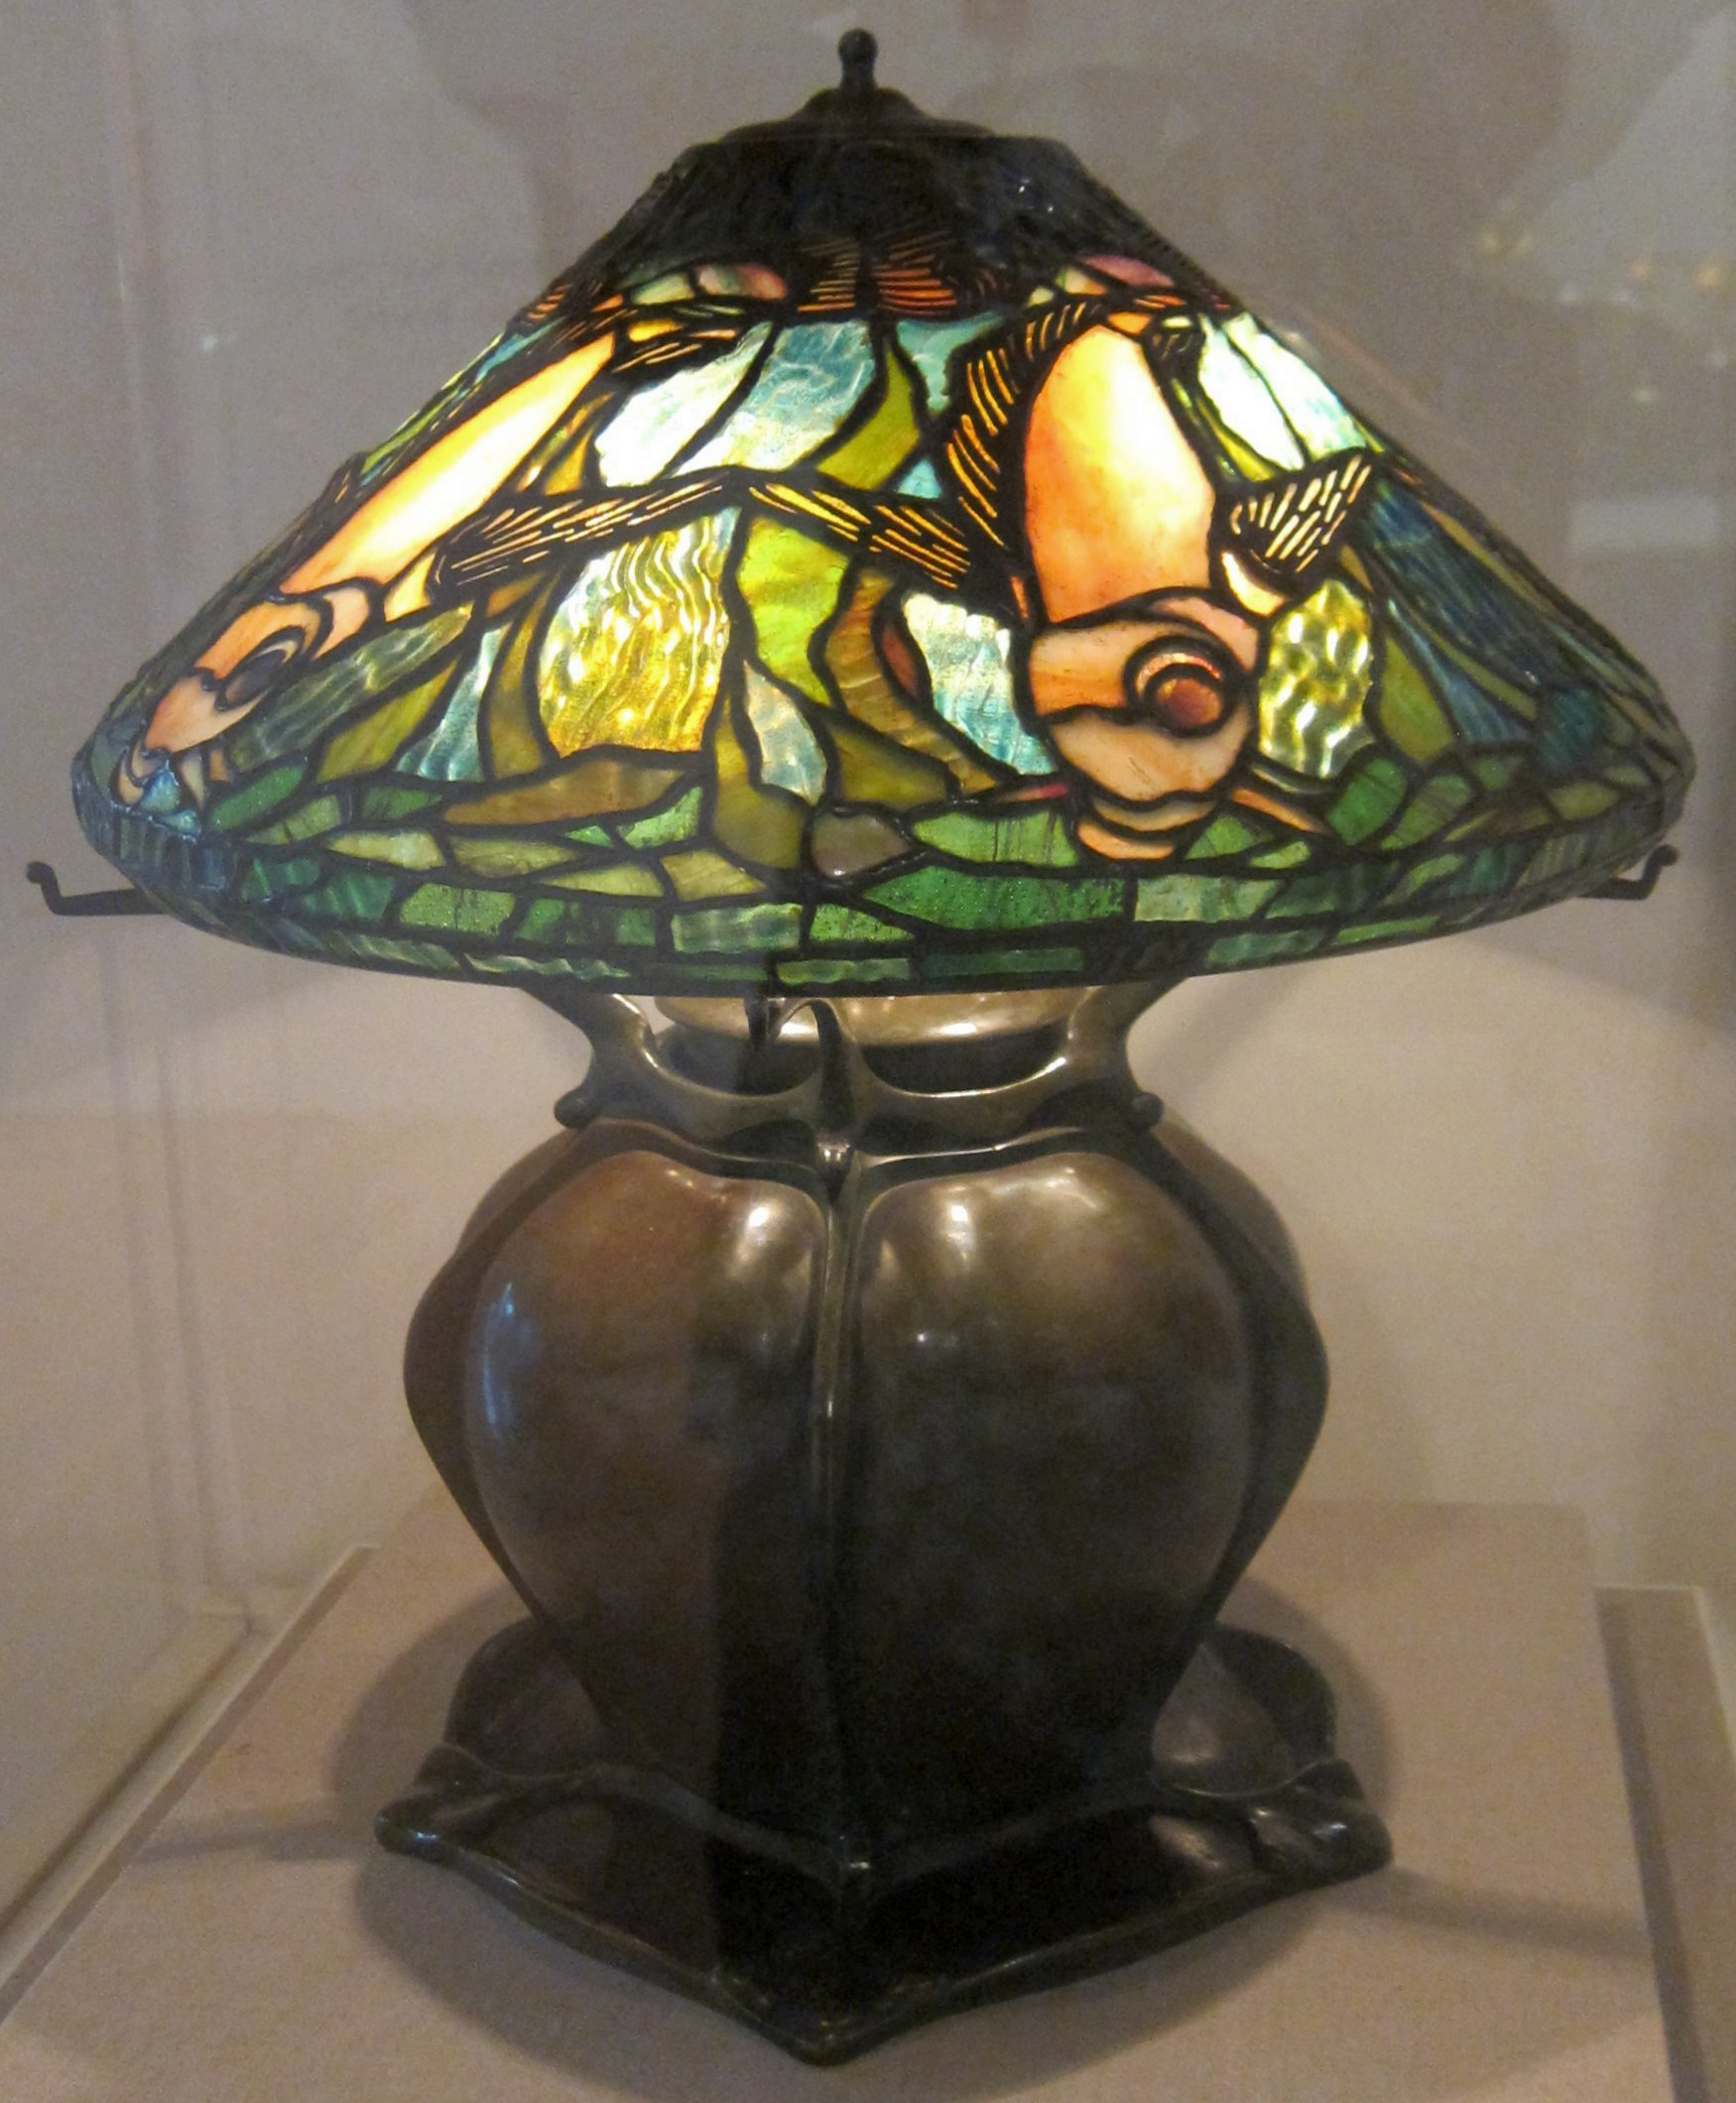 Attractive File:Table Lamp By Louis Comfort Tiffany, De Young Museum.JPG